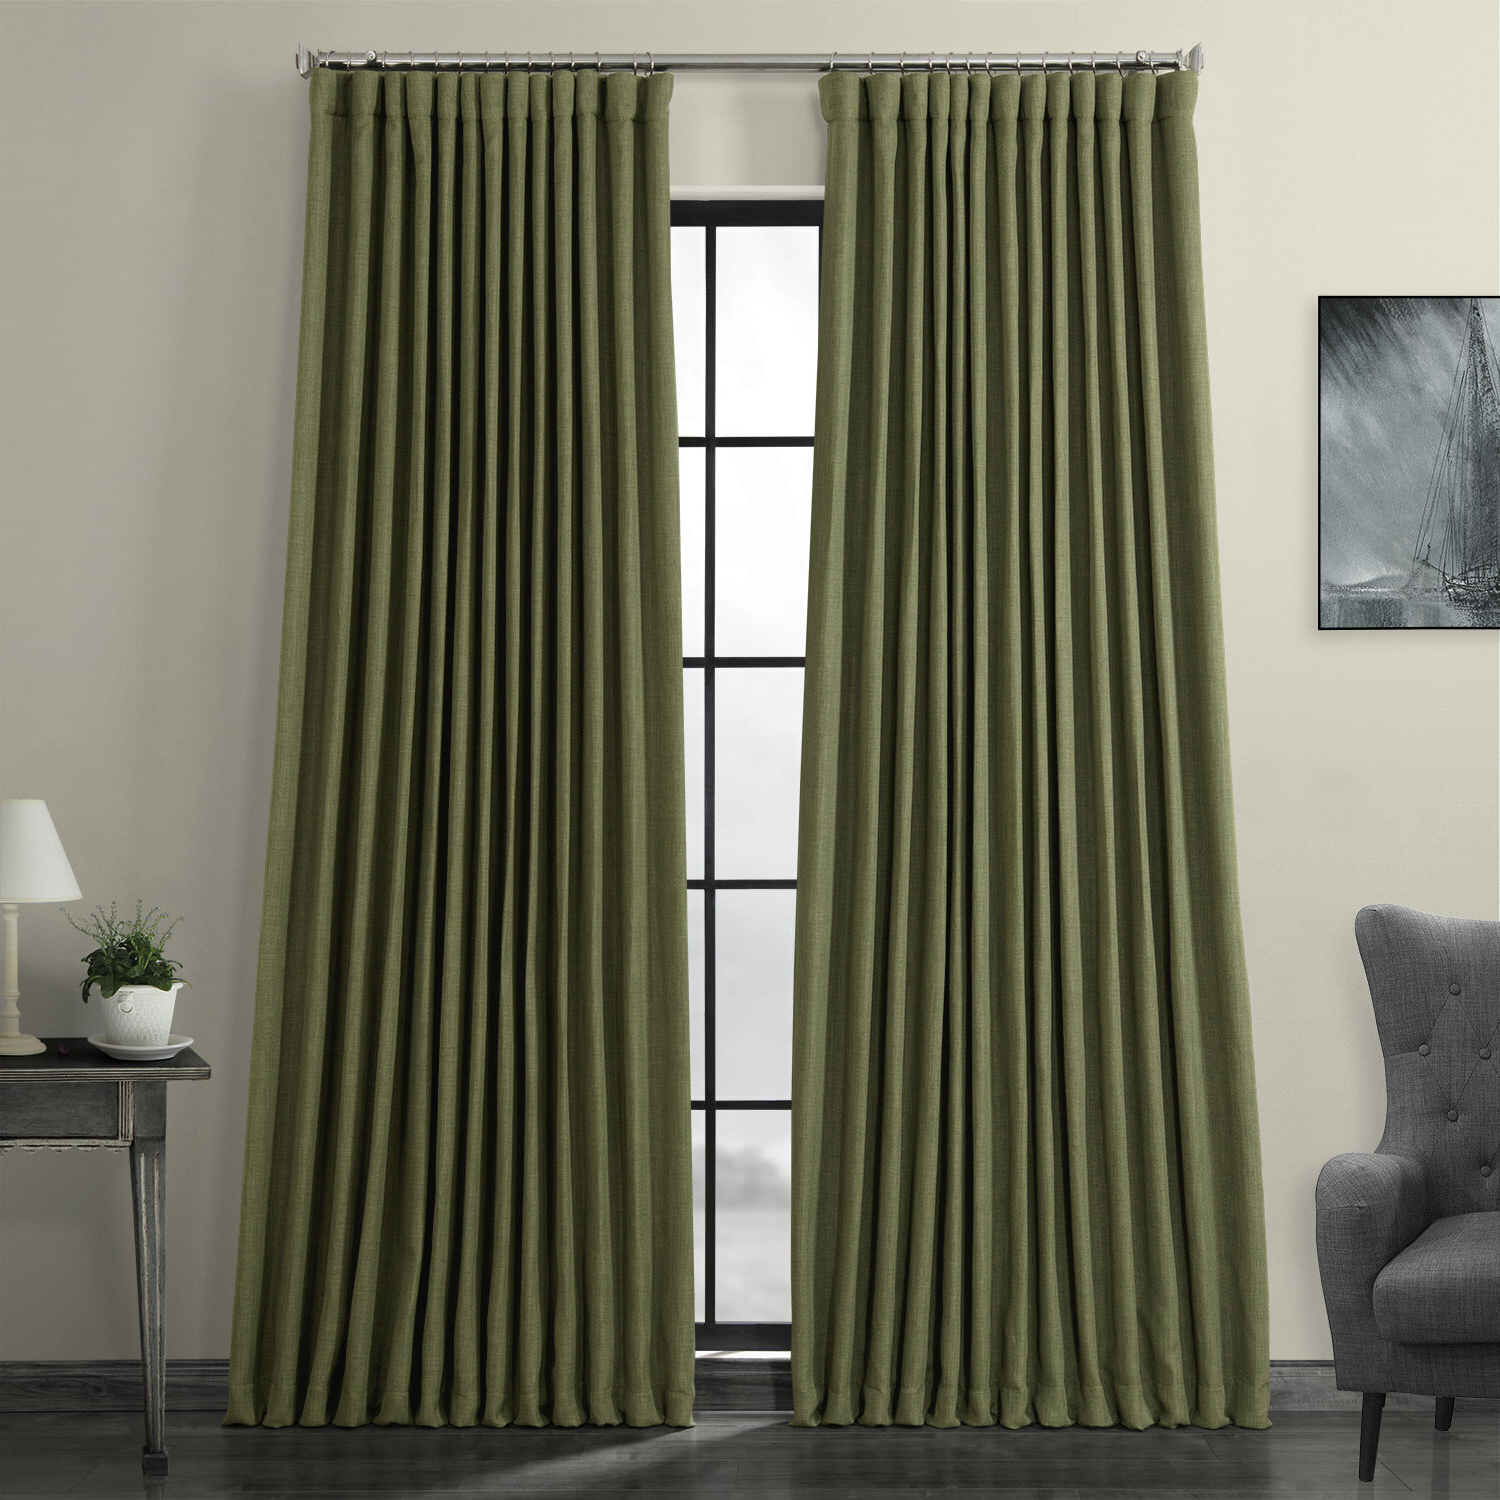 2021 Faux Linen Extra Wide Blackout Curtains With Waubun Faux Linen Extra Wide Solid Color Blackout Rod Pocket Single Curtain Panel (View 3 of 21)